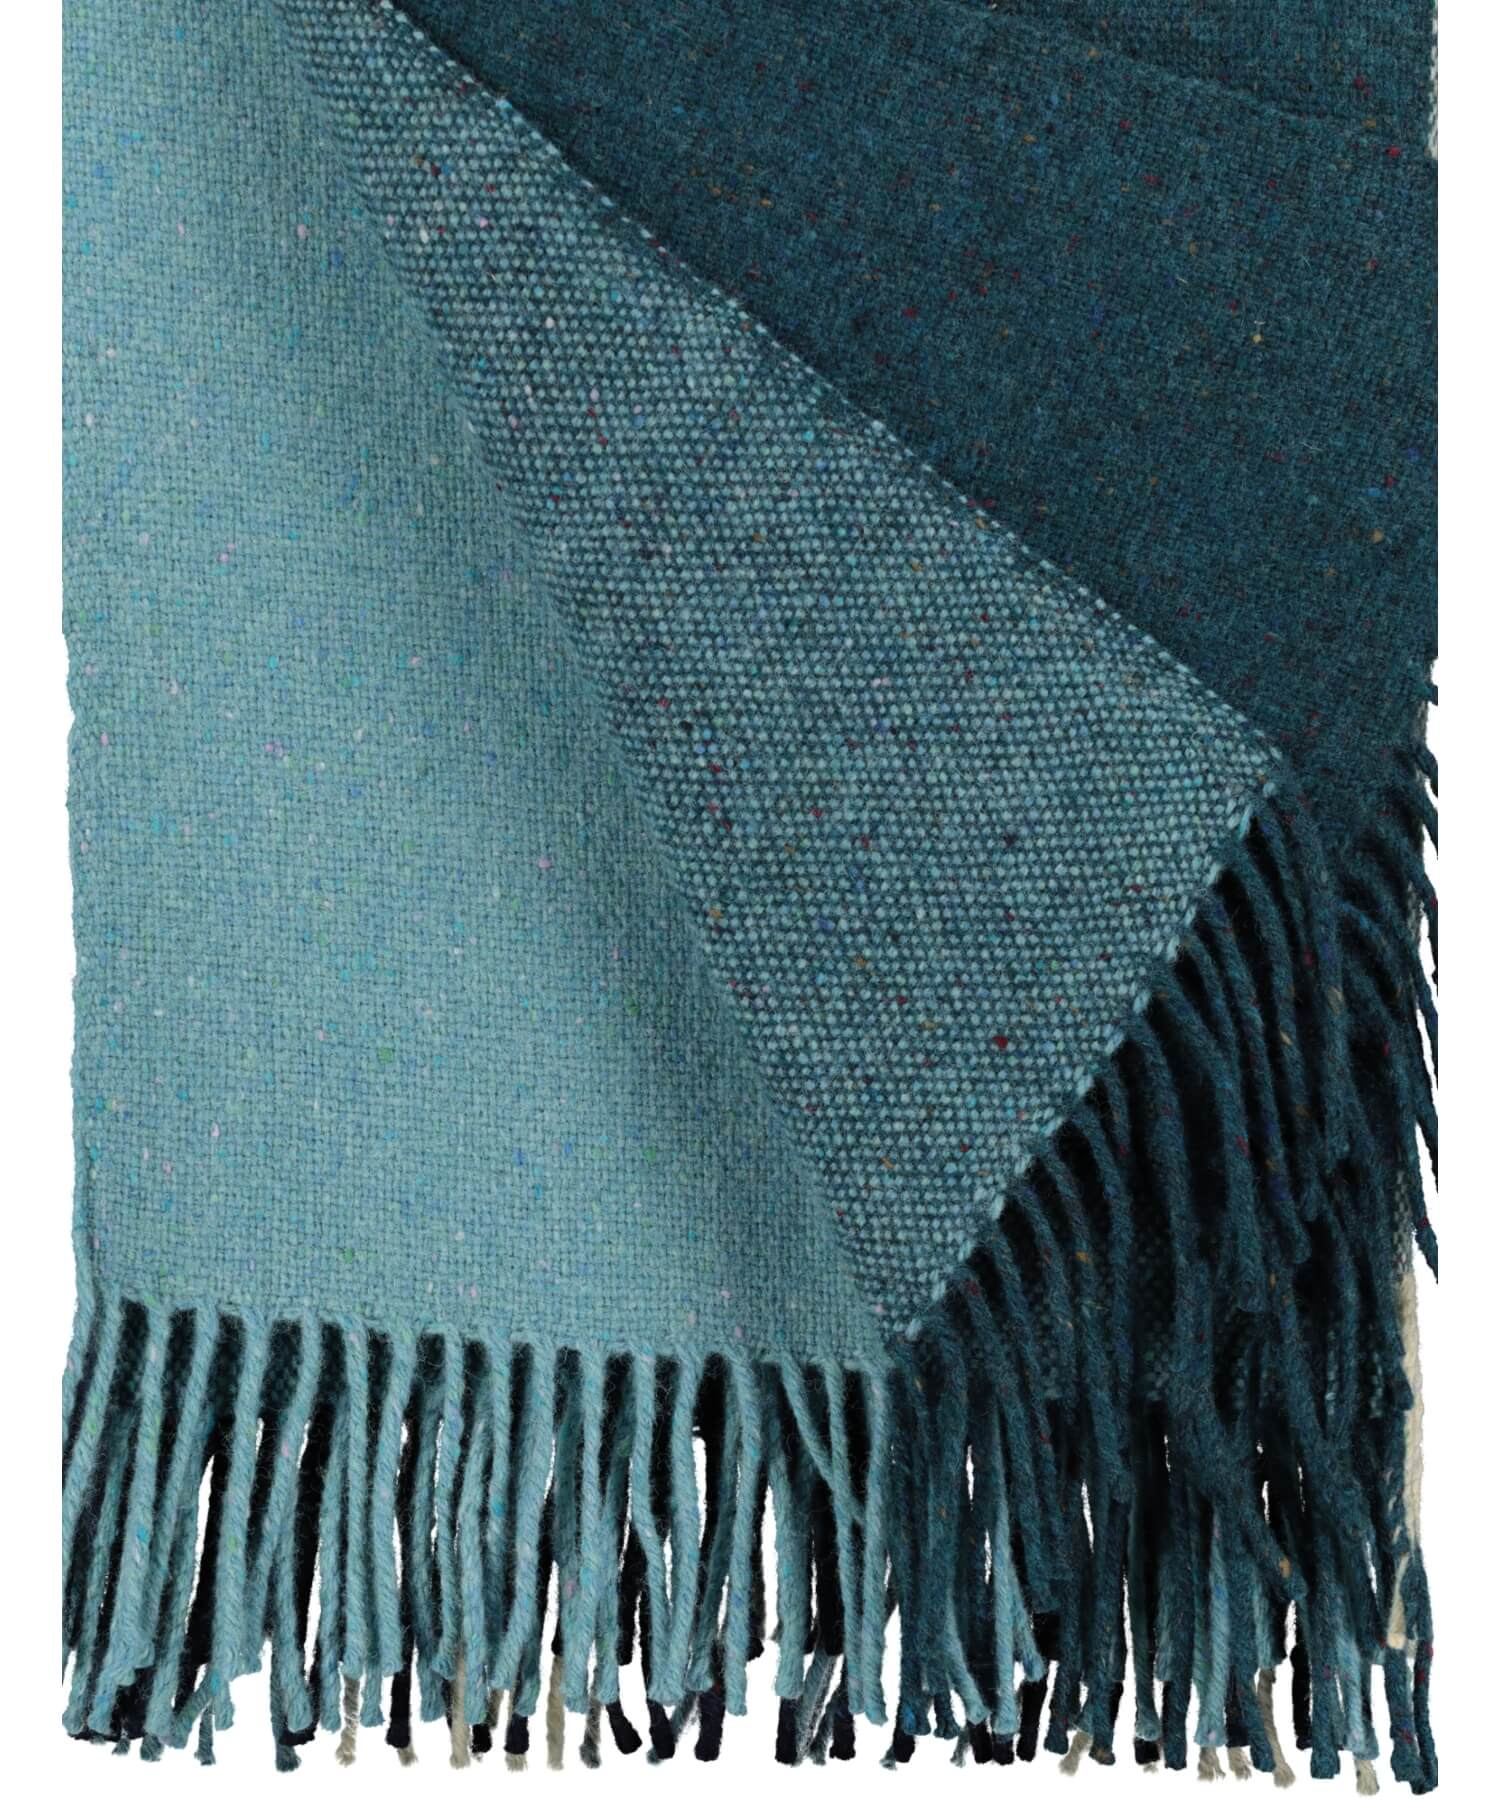 Handwoven Into The Wild Throw - Seascape - [Studio Donegal] - Throws & Cushions - Irish Gifts